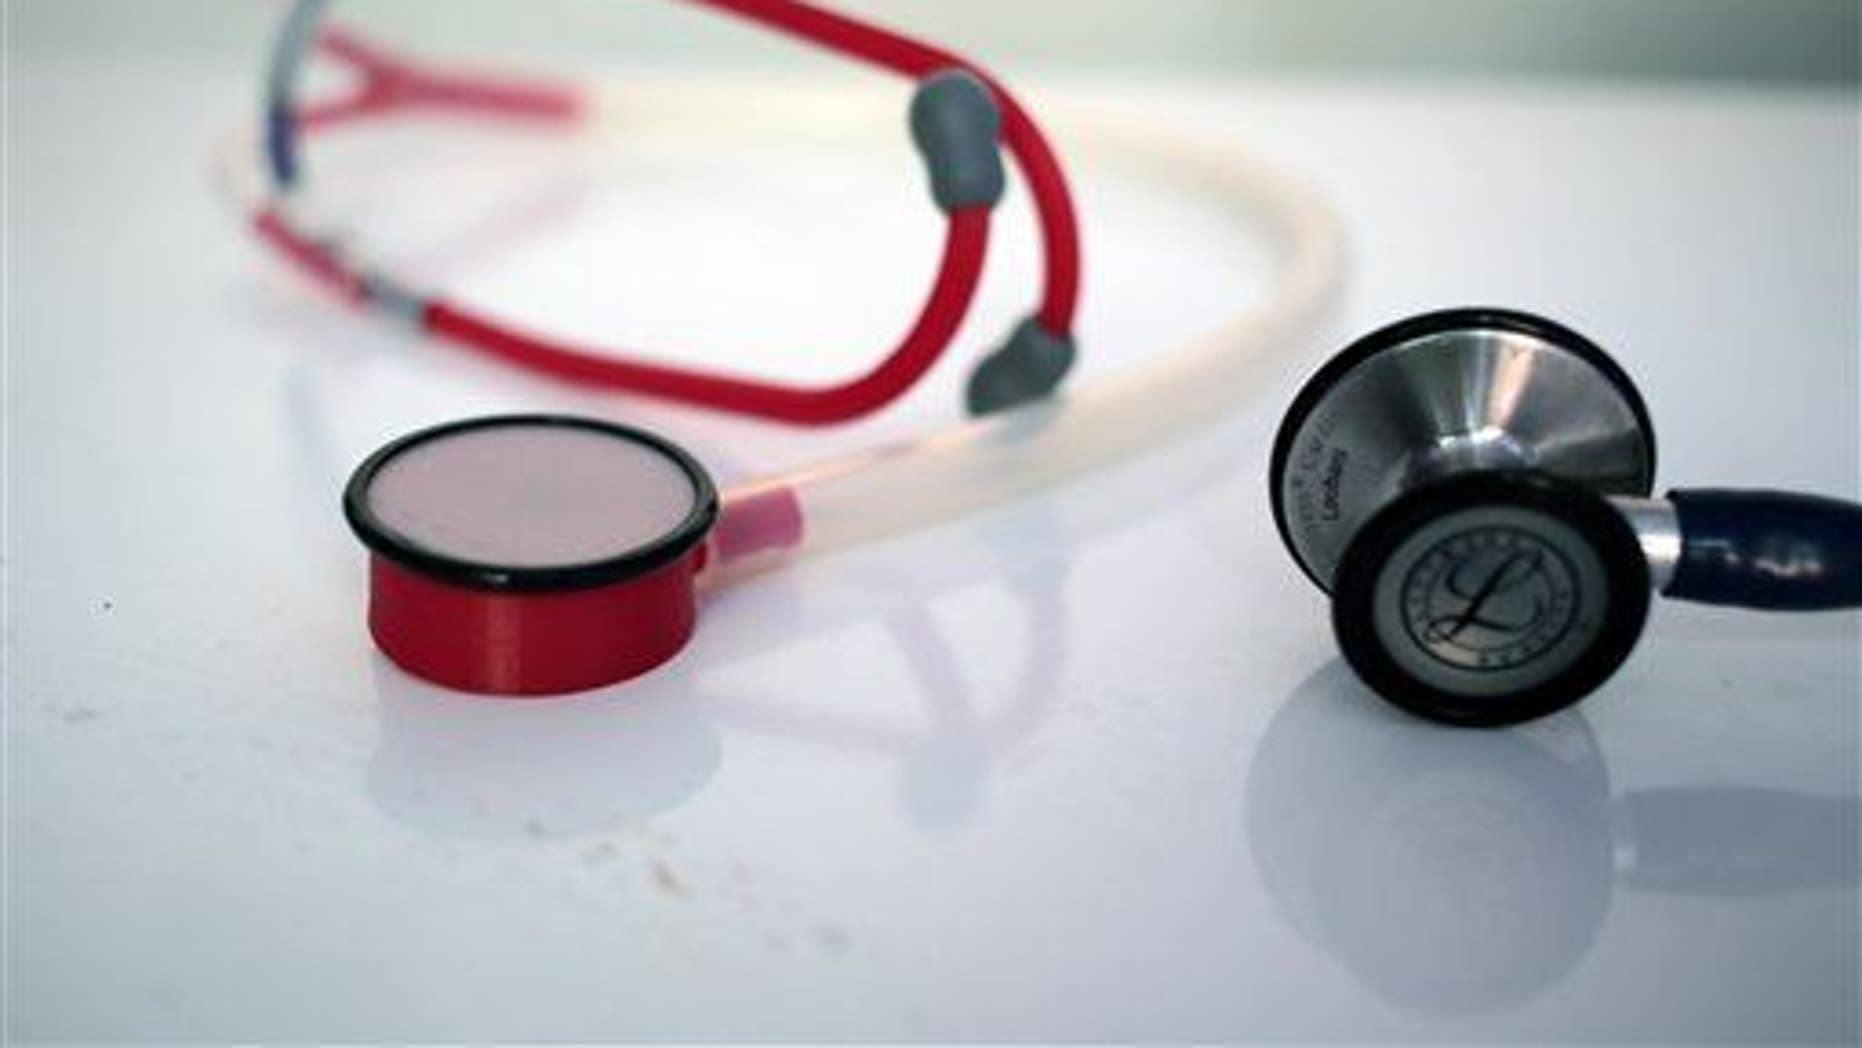 In this Monday, Sept. 7, 2015 photo, a 3D printed stethoscope, left, is seen next to a traditional medical stethoscope in Gaza City. In a territory lacking many basic medical supplies, Dr. Tarek Loubani says he has designed a stethoscope that can be made by a 3-D printer for just $2.50 _ a fraction of the cost of leading brands. Some doctors say the equipment is just as good. (AP Photo/ Khalil Hamra)